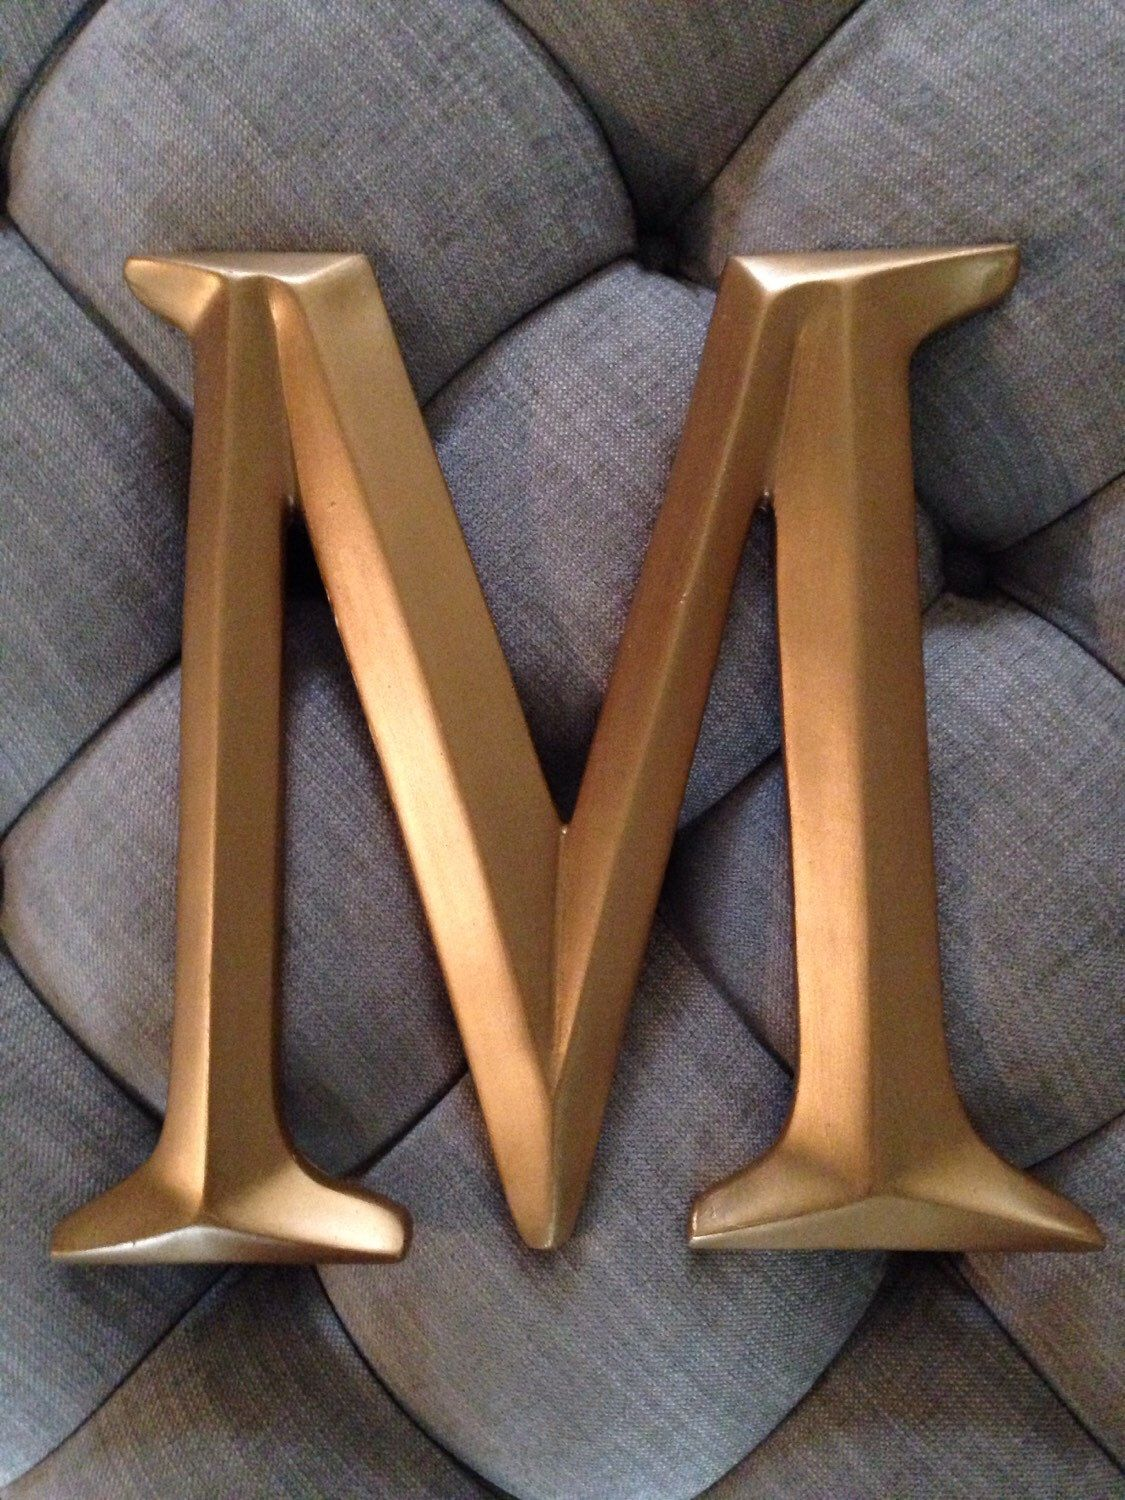 Gold Letters For Wall Large Wall Letter Photo Wall Letter Large Letter M Gold Letters